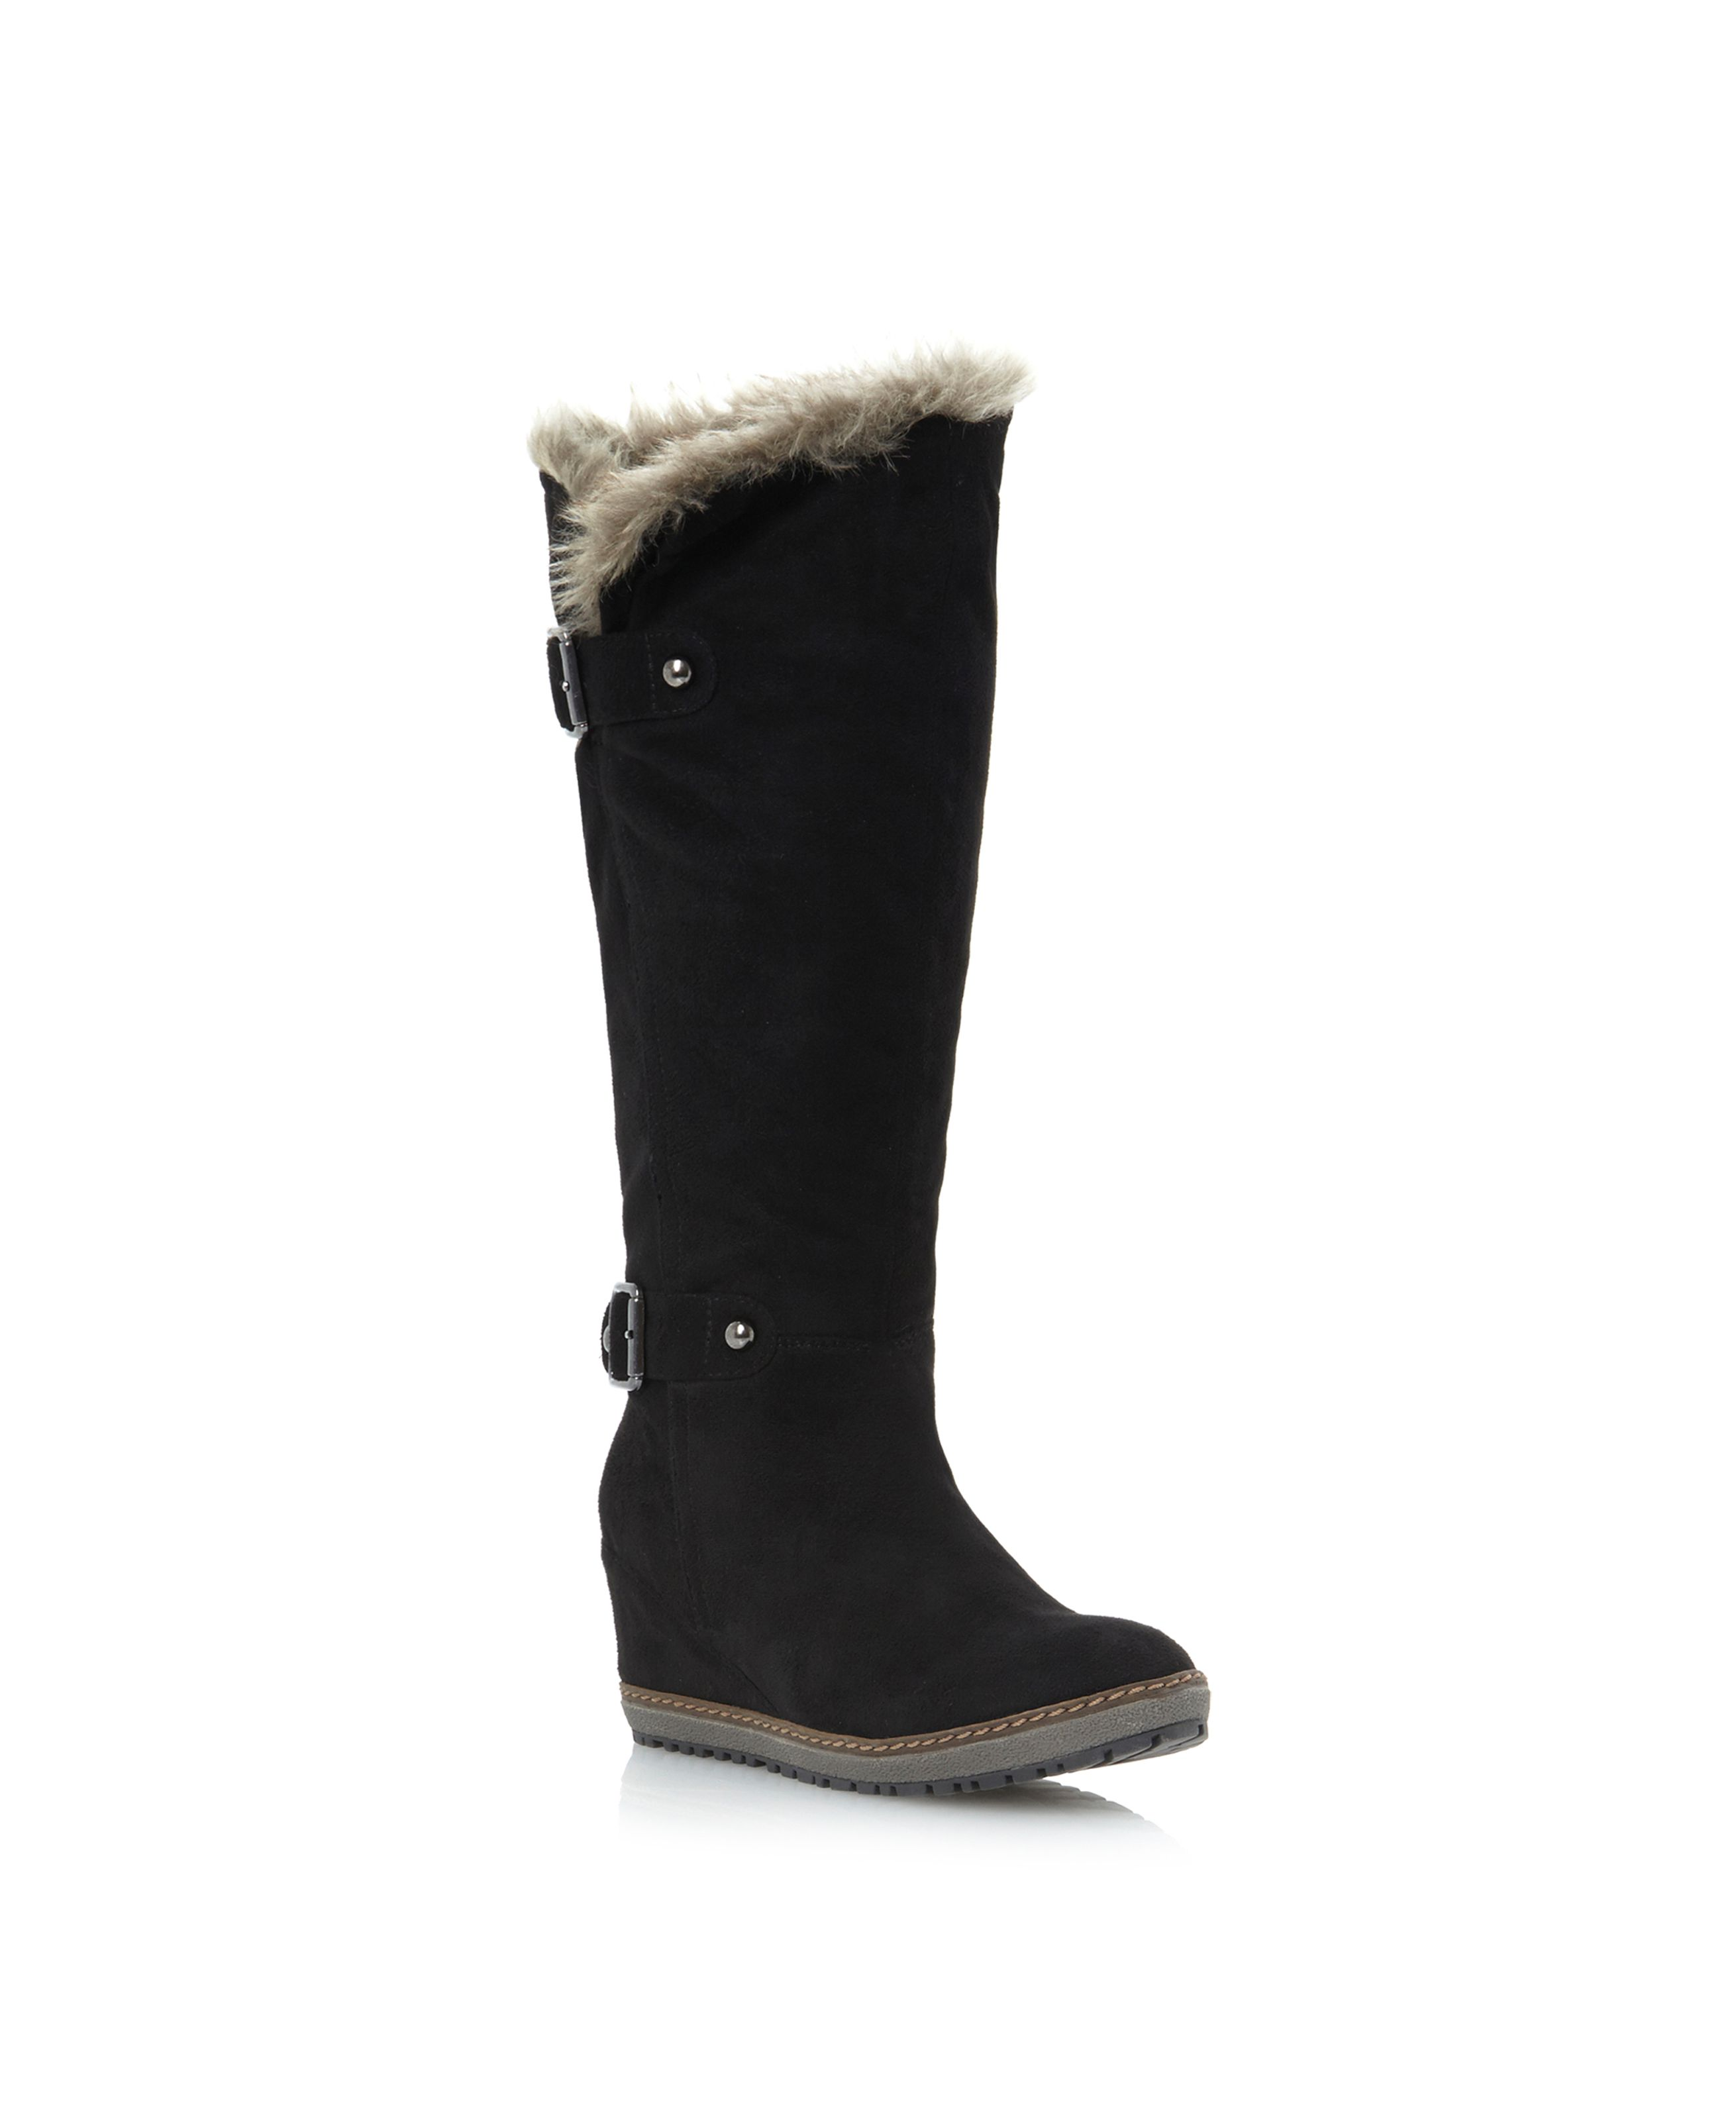 Tarzan overlasted wedge knee boots